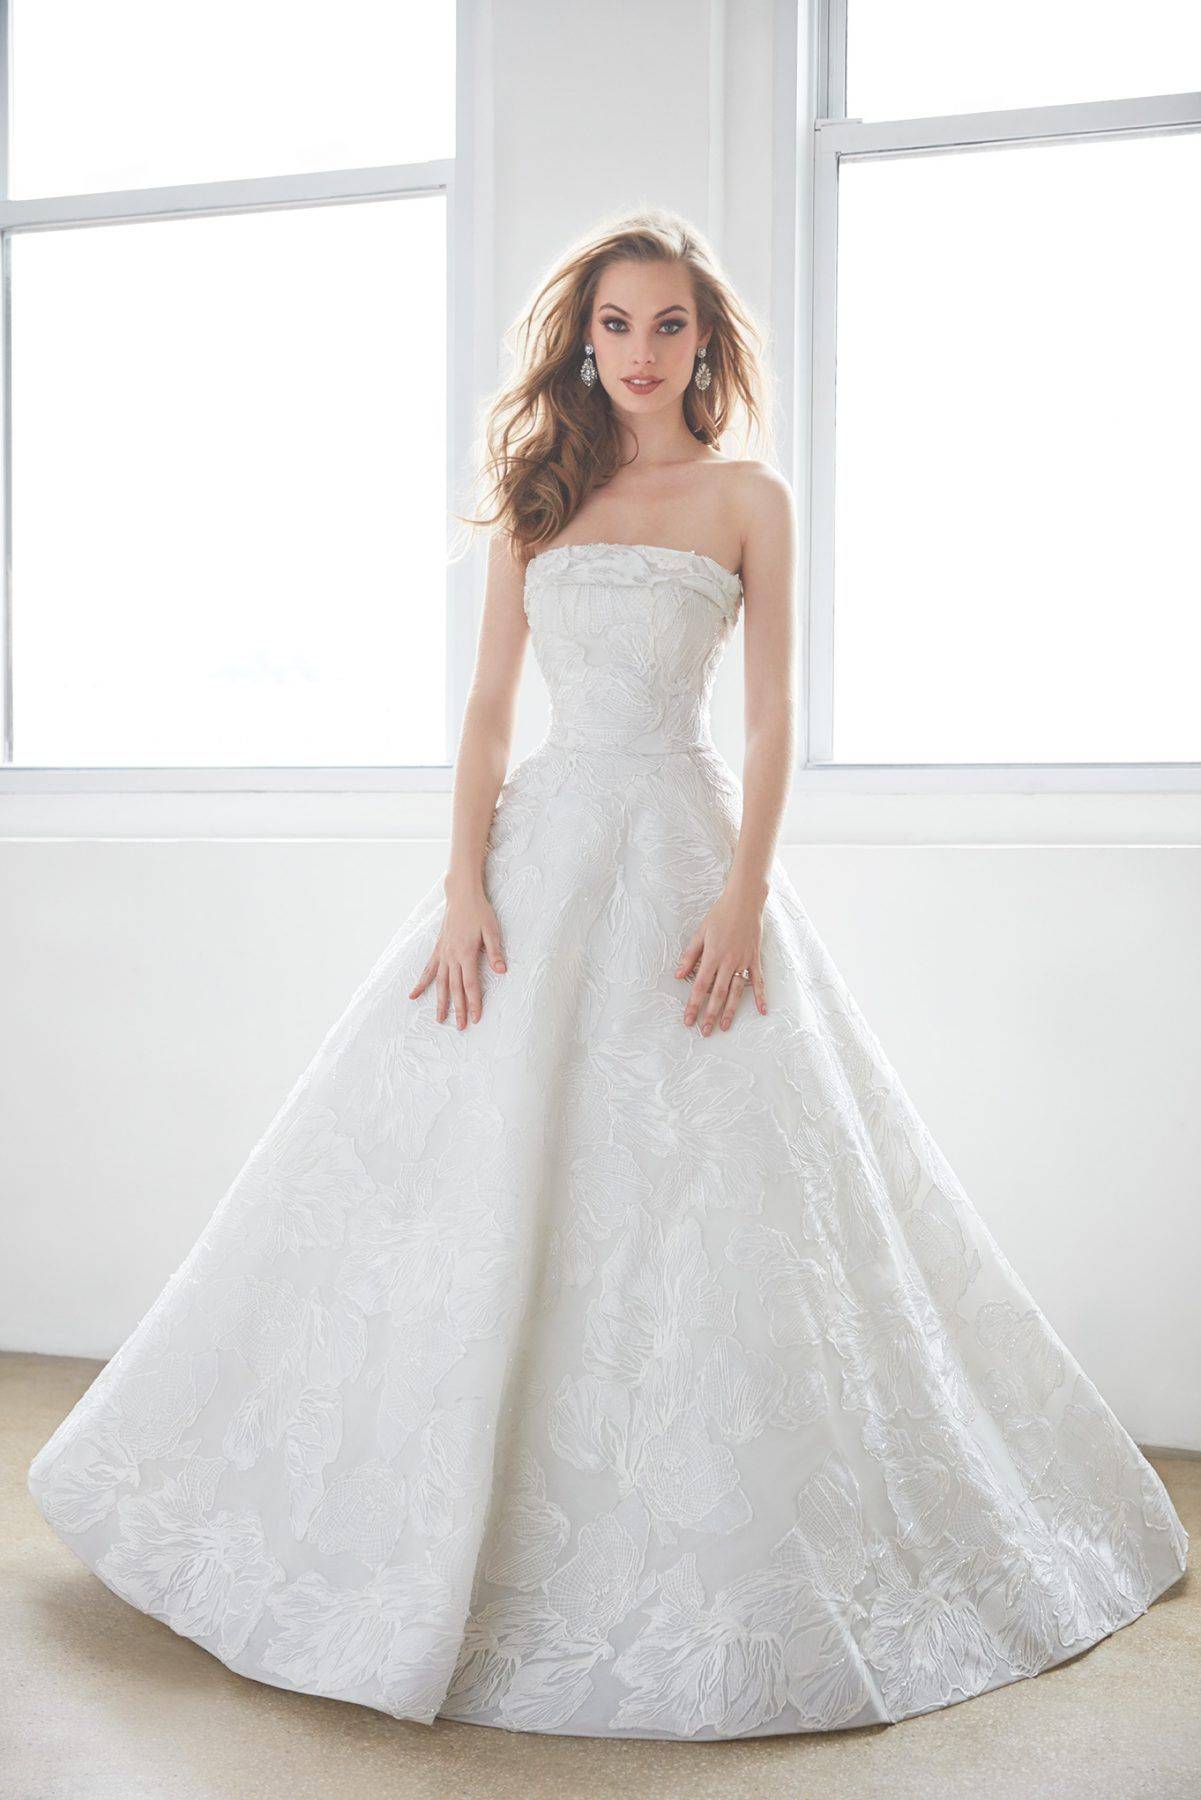 Lace ball gown wedding dresses  Straight Strapless Floral Lace Ball Gown Wedding Dress by Madison